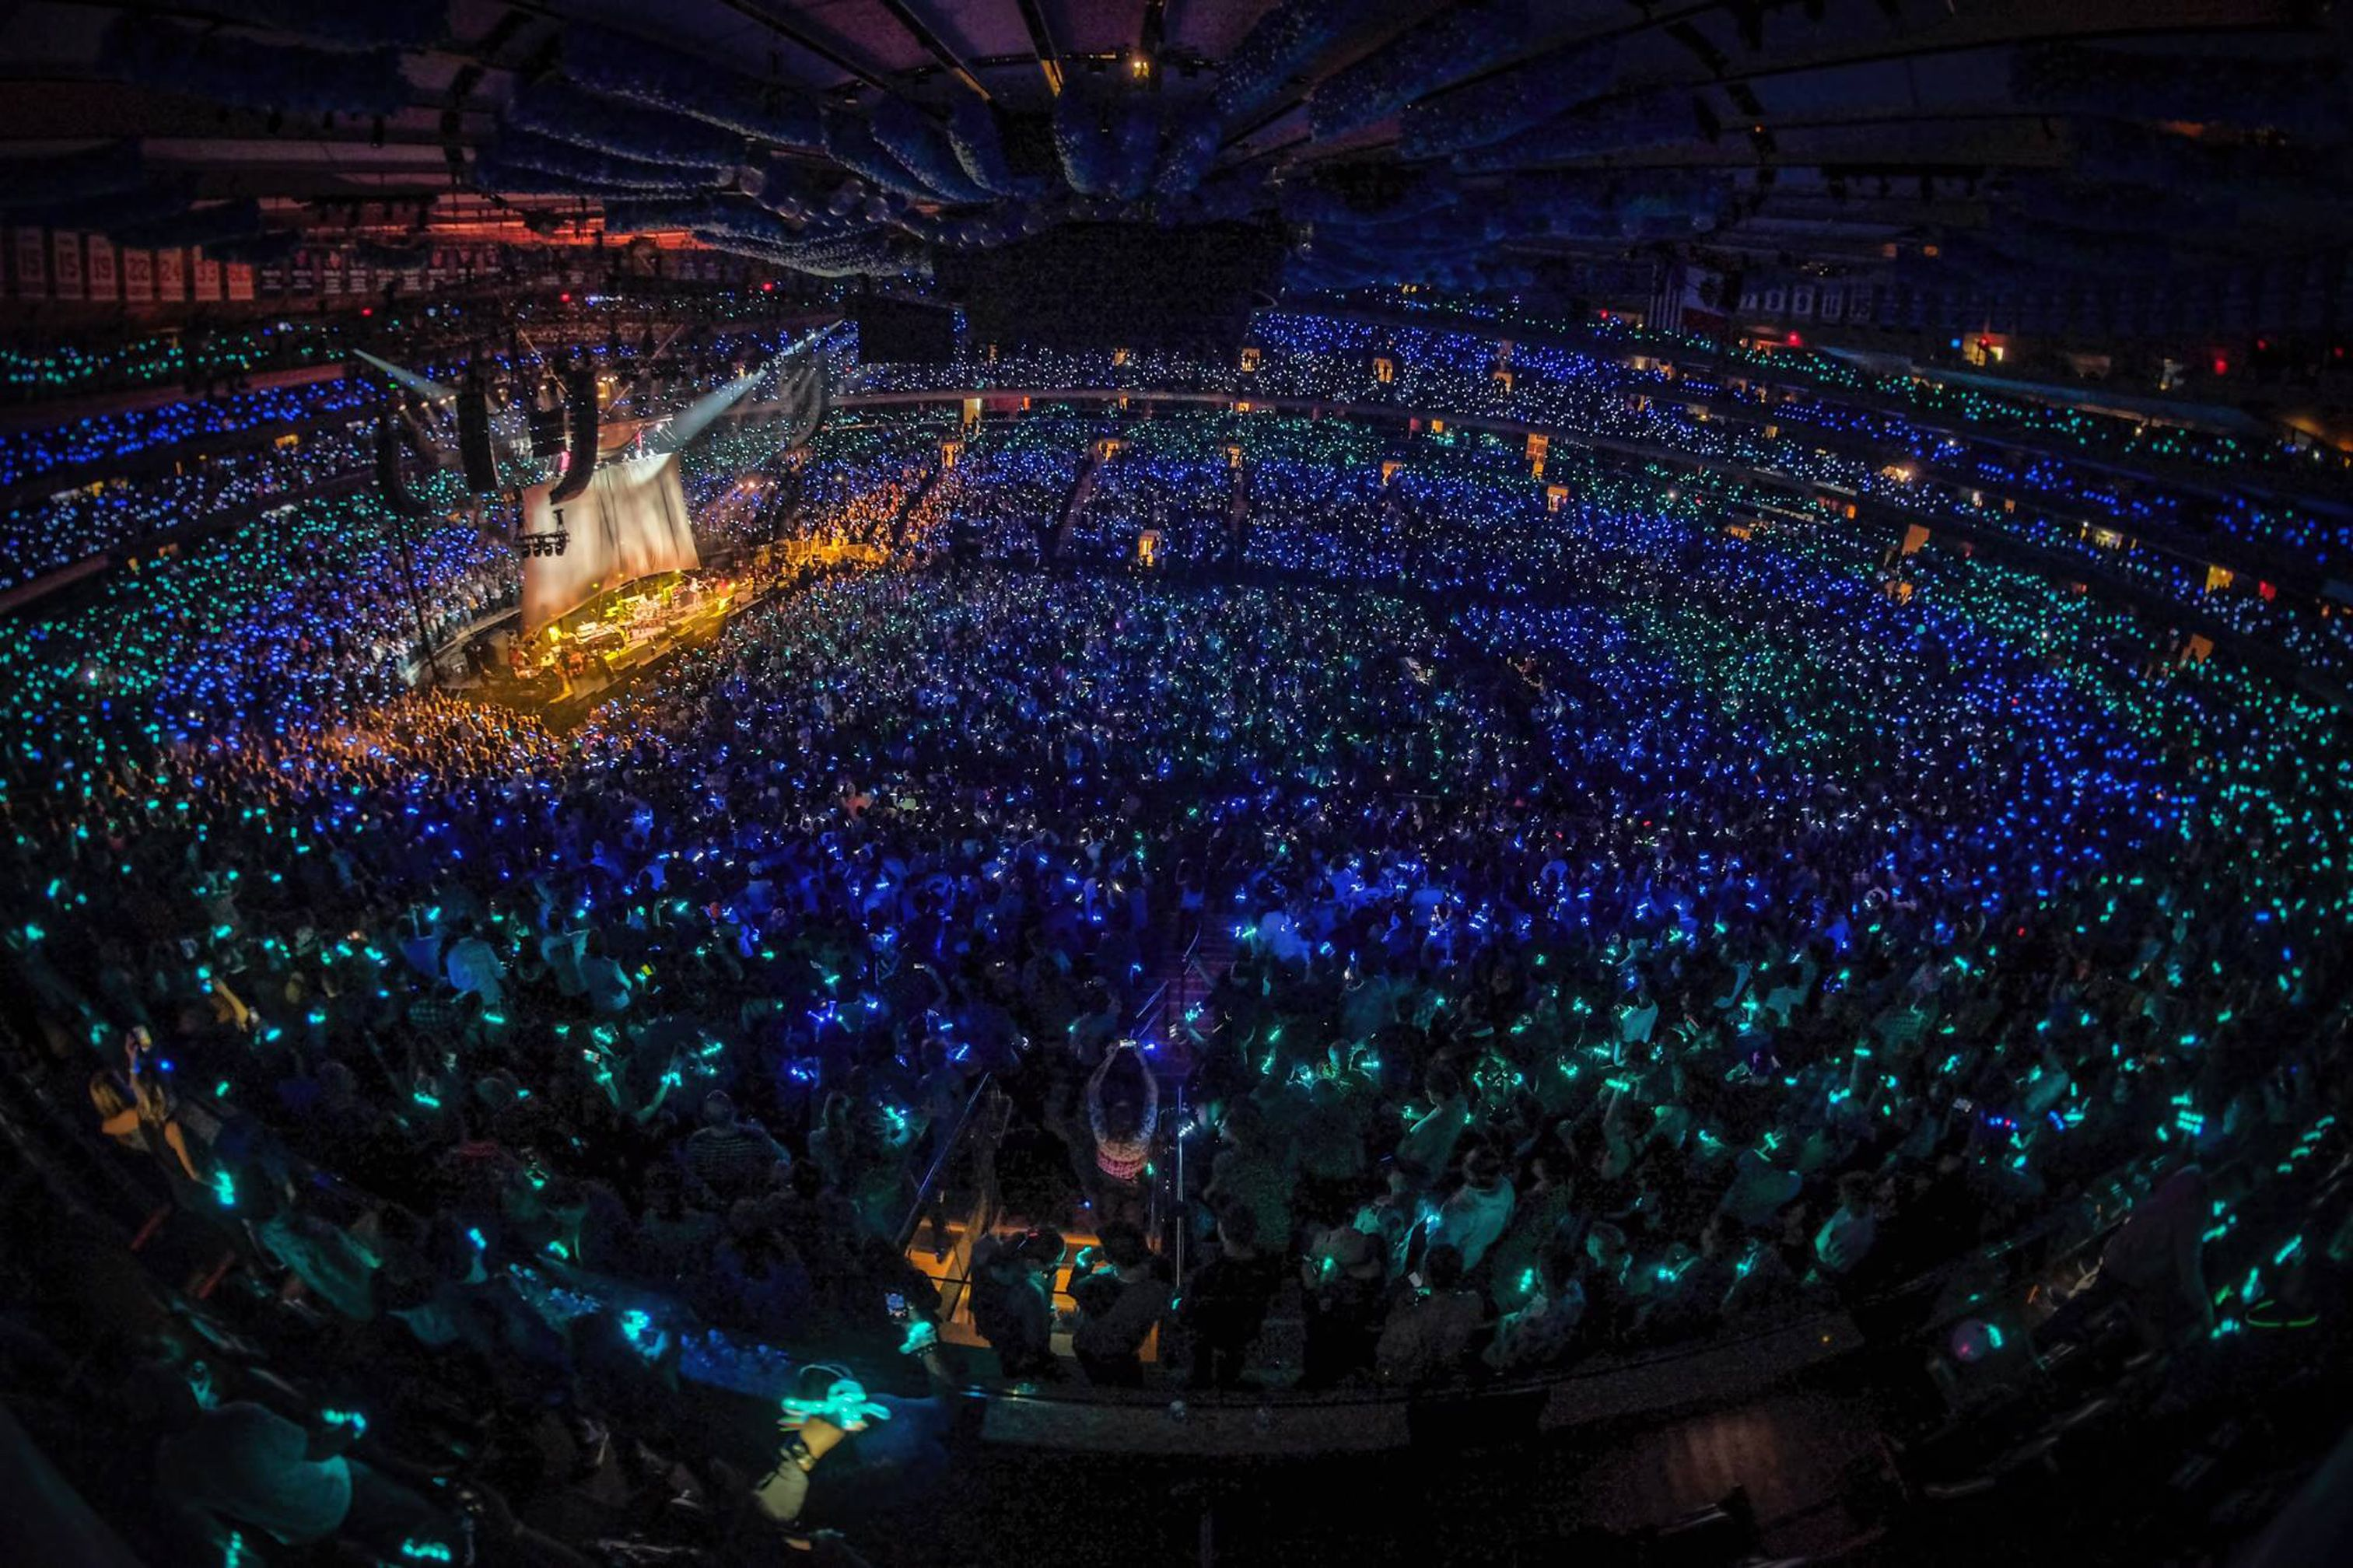 Phish Concert Live In New York City At Madison Square Garden Lighting Up Fans With Xylobands Led Wristbands Provided And Concert Madison Square Garden Event